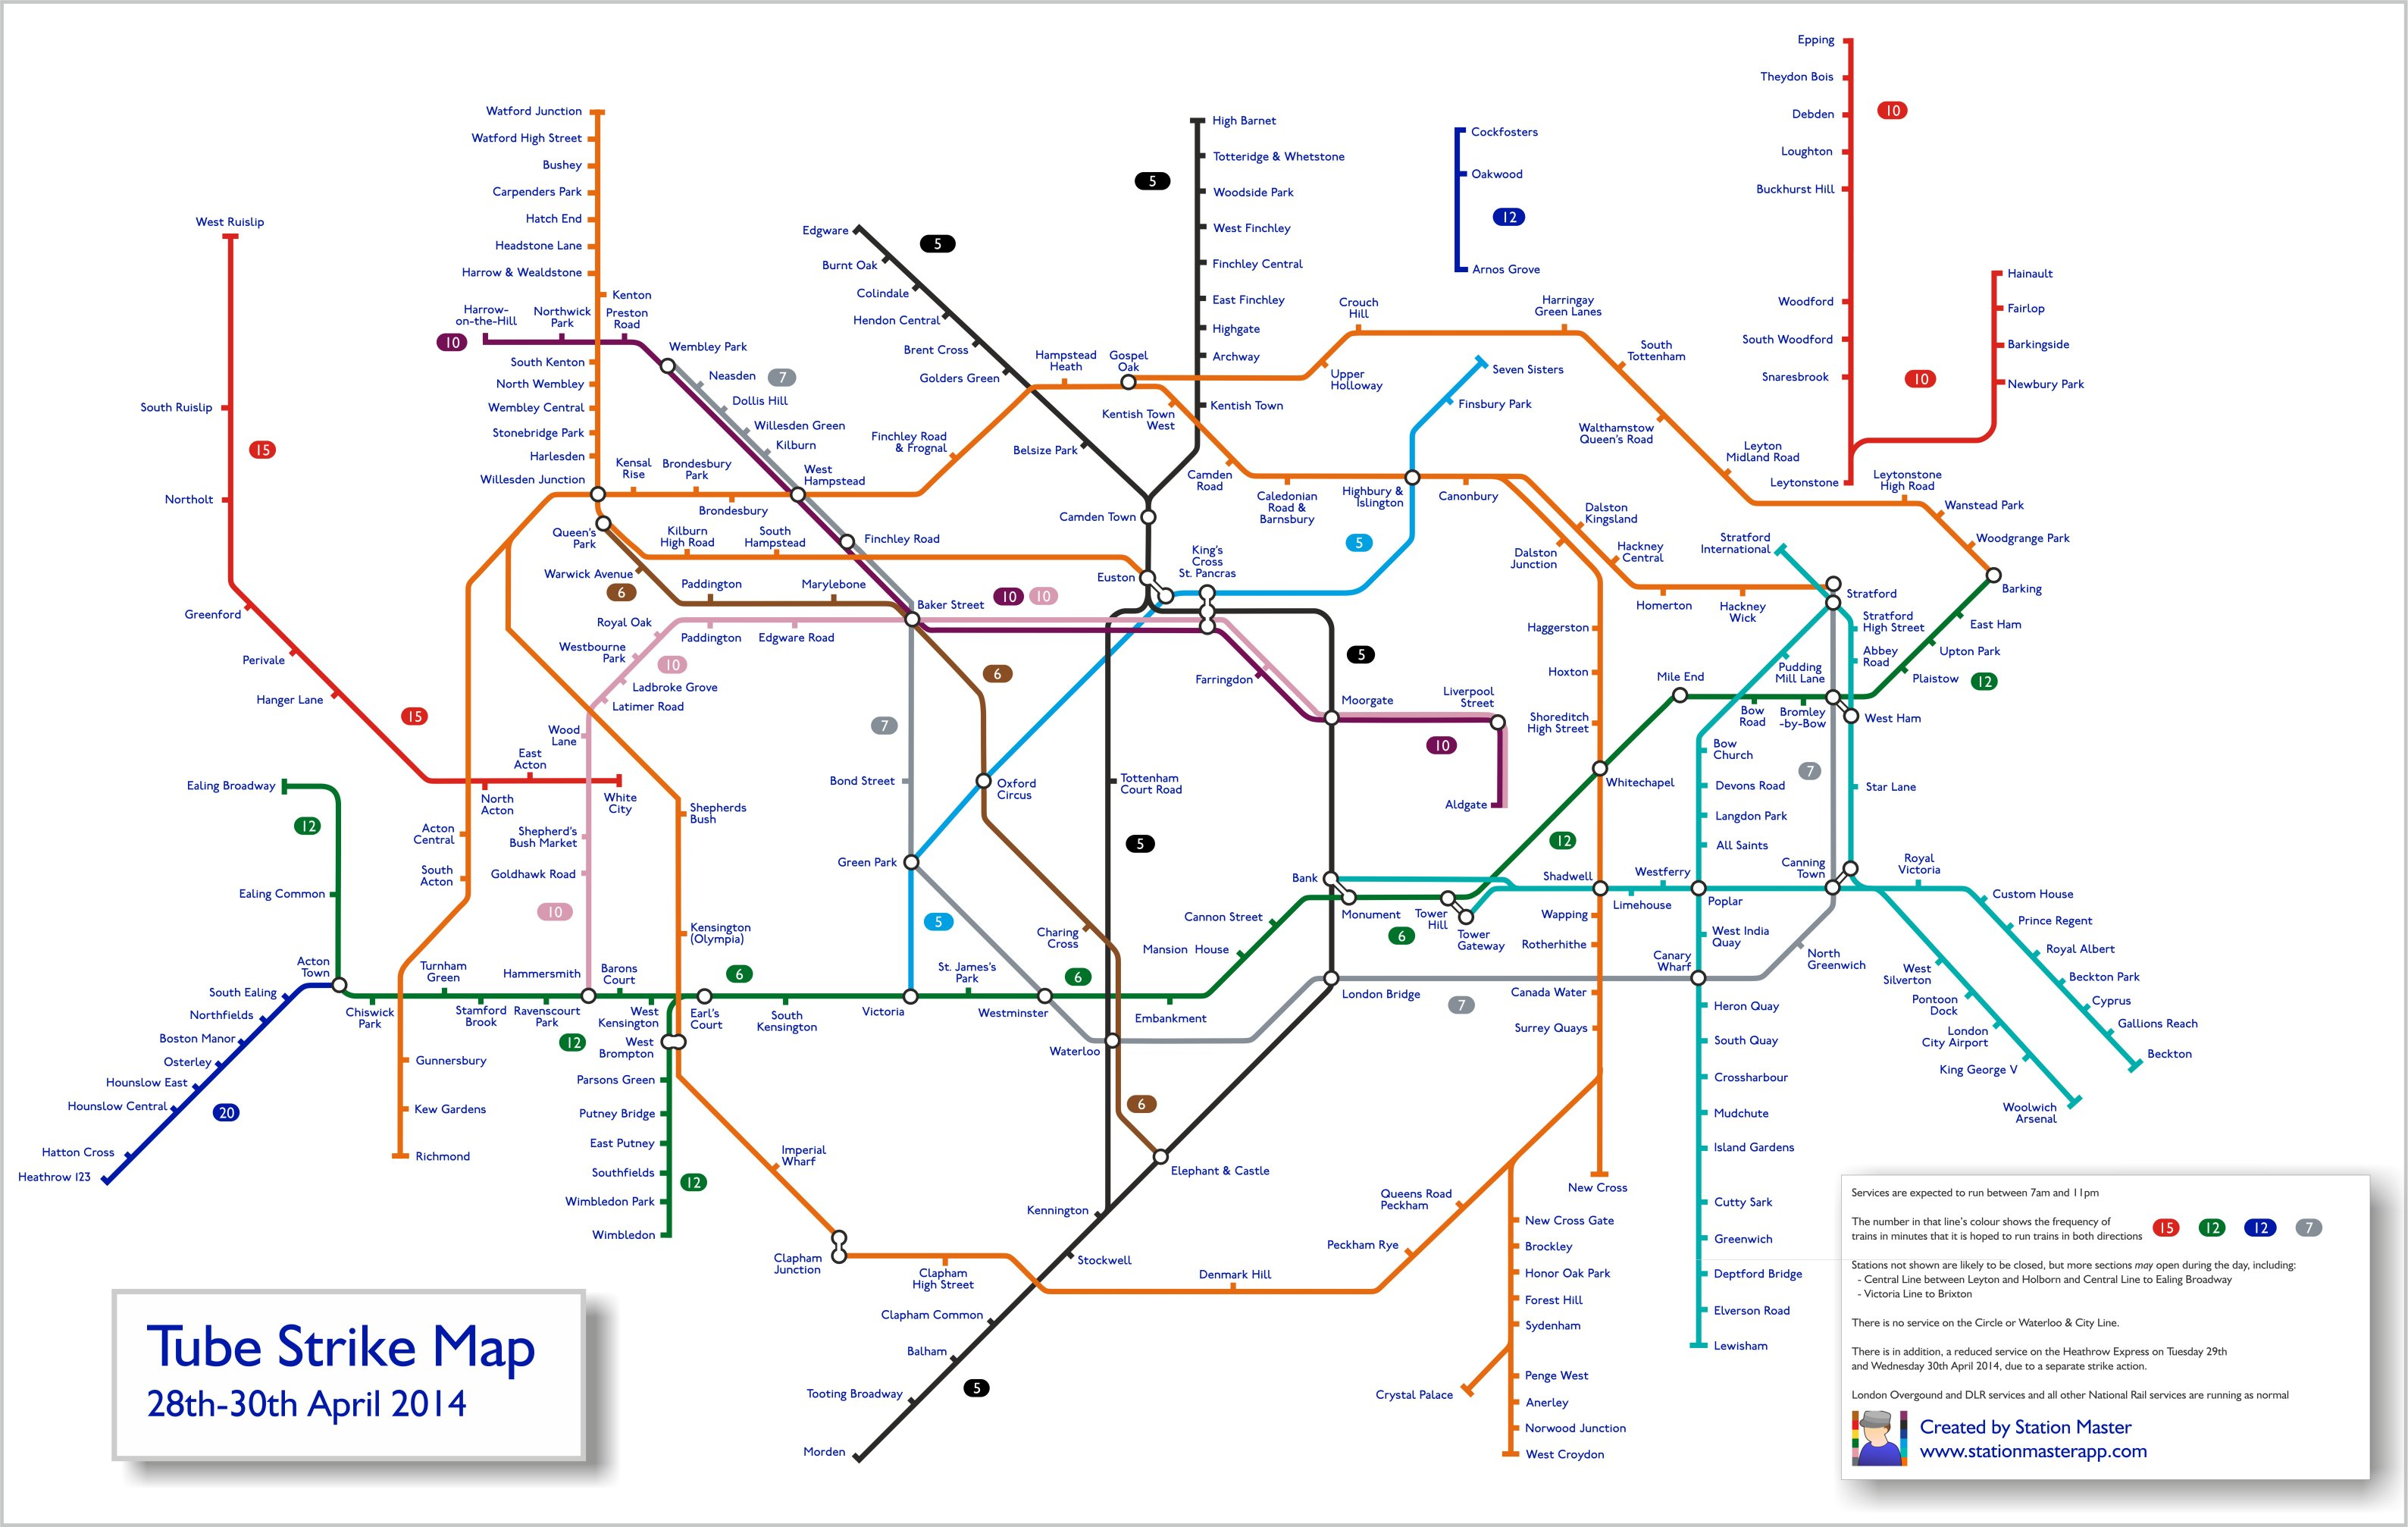 tube strike map april 2014: this is what the london underground map